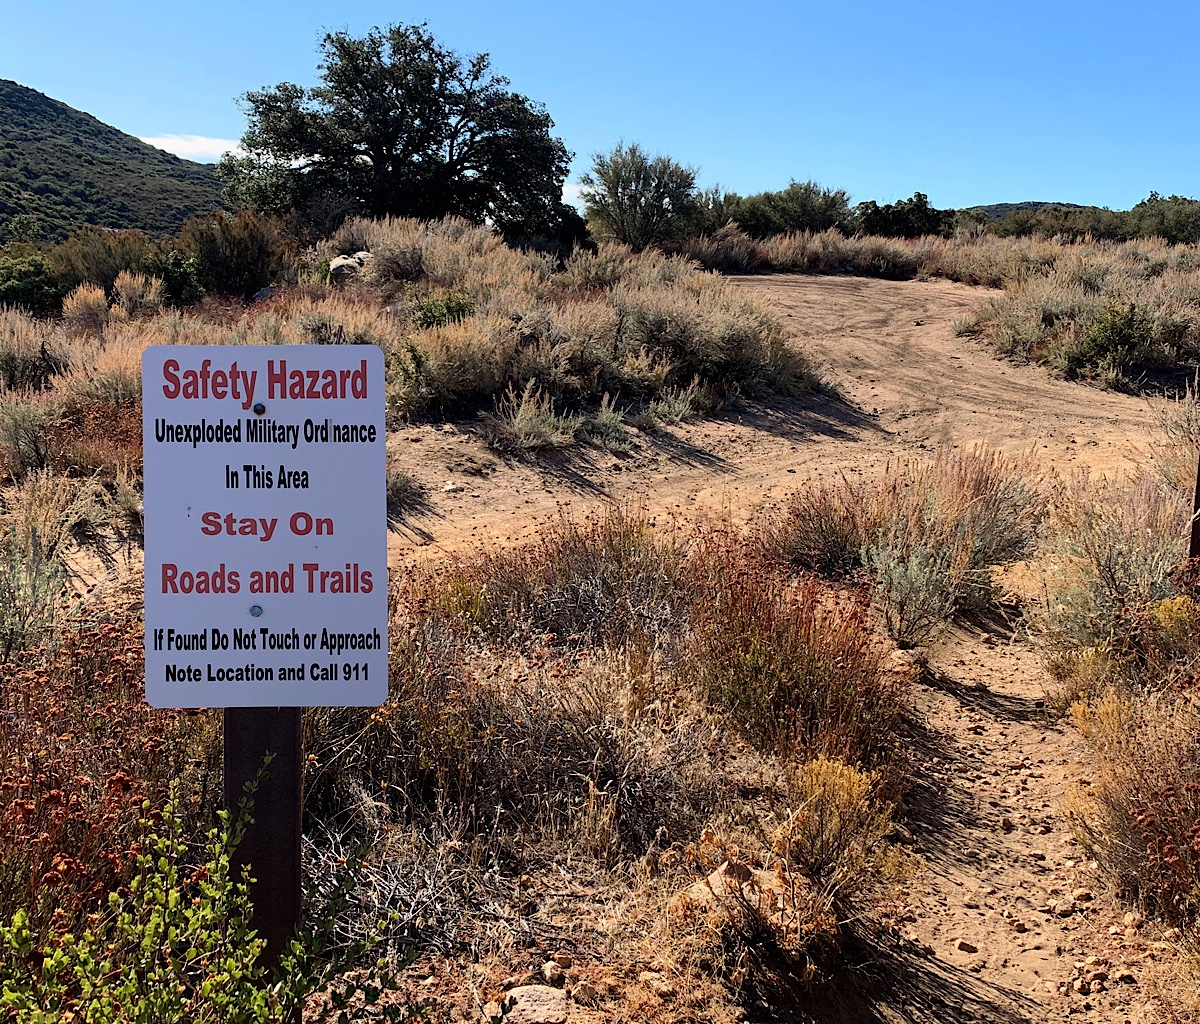 The PCT enters a hazard zone of unexploded ordinance and i happily stay on the path.